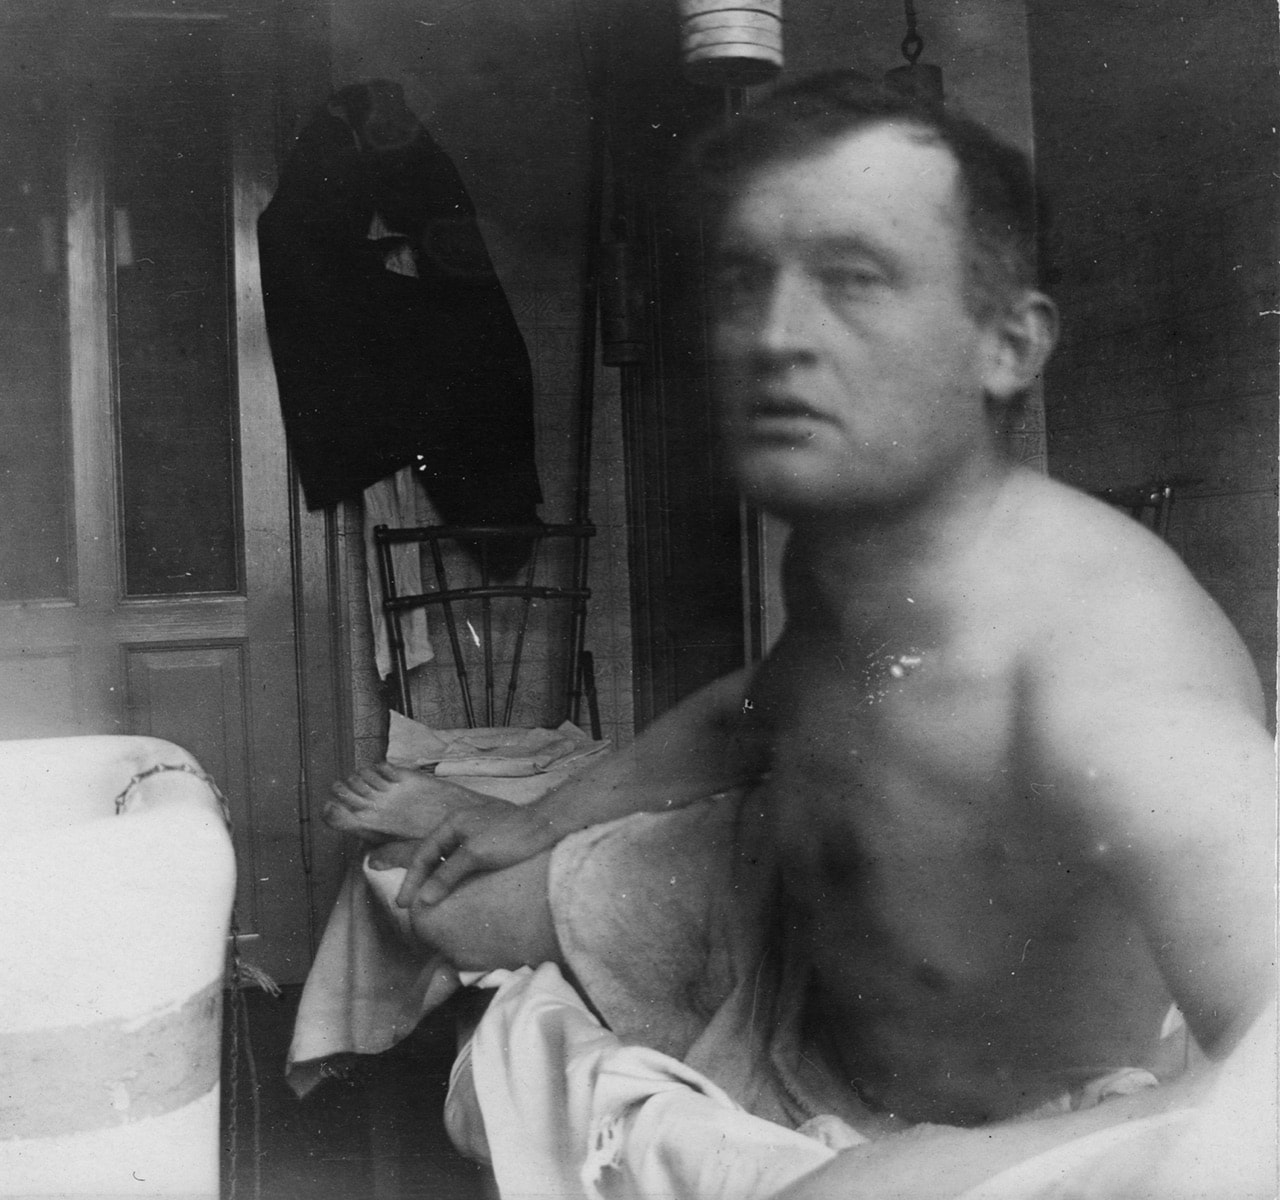 Self-Portrait 'à la Marat,' Beside a Bathtub at Dr. Jacobson's Clinic, 1908-09, Edvard Munch © Munch Museum